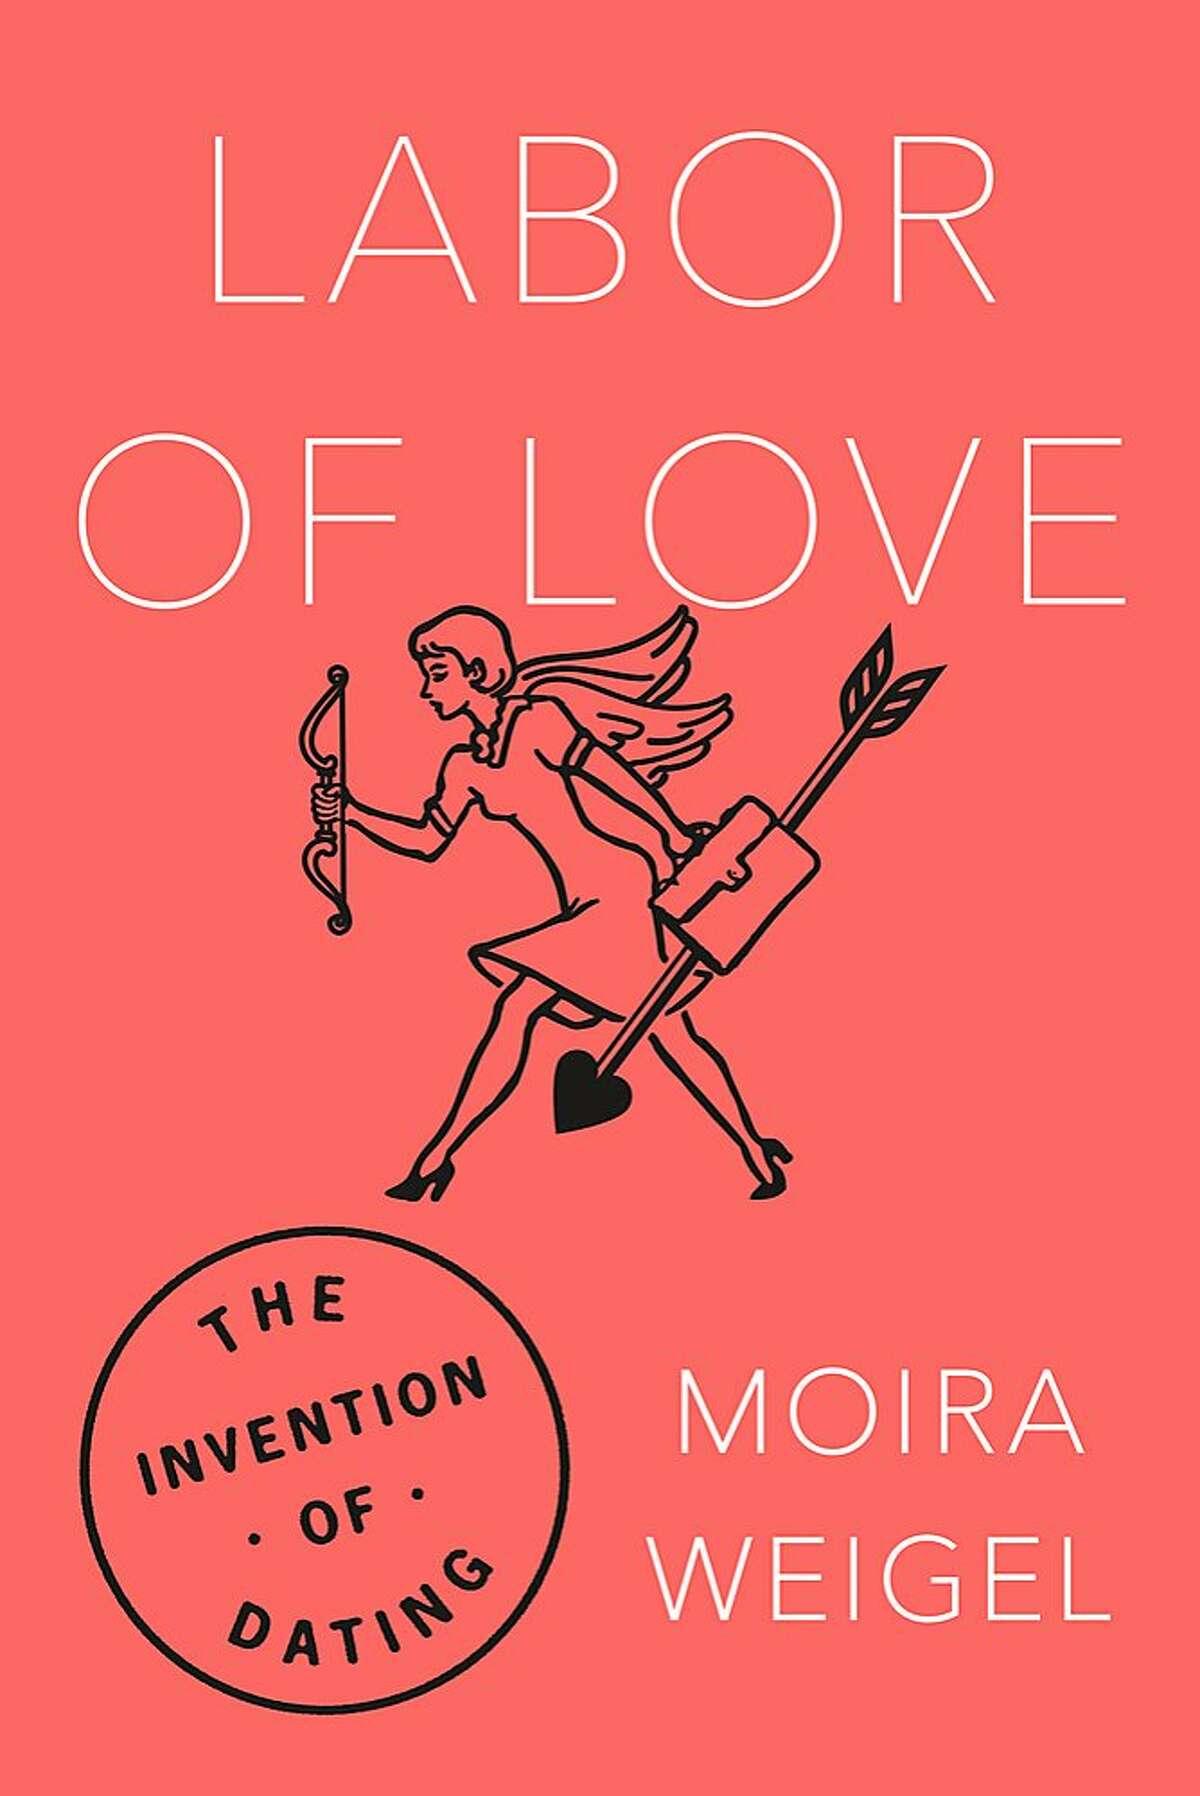 """Moira Weigel's new book, """"Labor of Love,"""" (Farrar Straus and Giroux, 304 pages) takes readers through the history of dating, upending long-held ideas about courtship, love, sex with research that shows how changes in the workforce, education and leisure time from the 20th to the 21st century have affected the way people mate - or don't."""